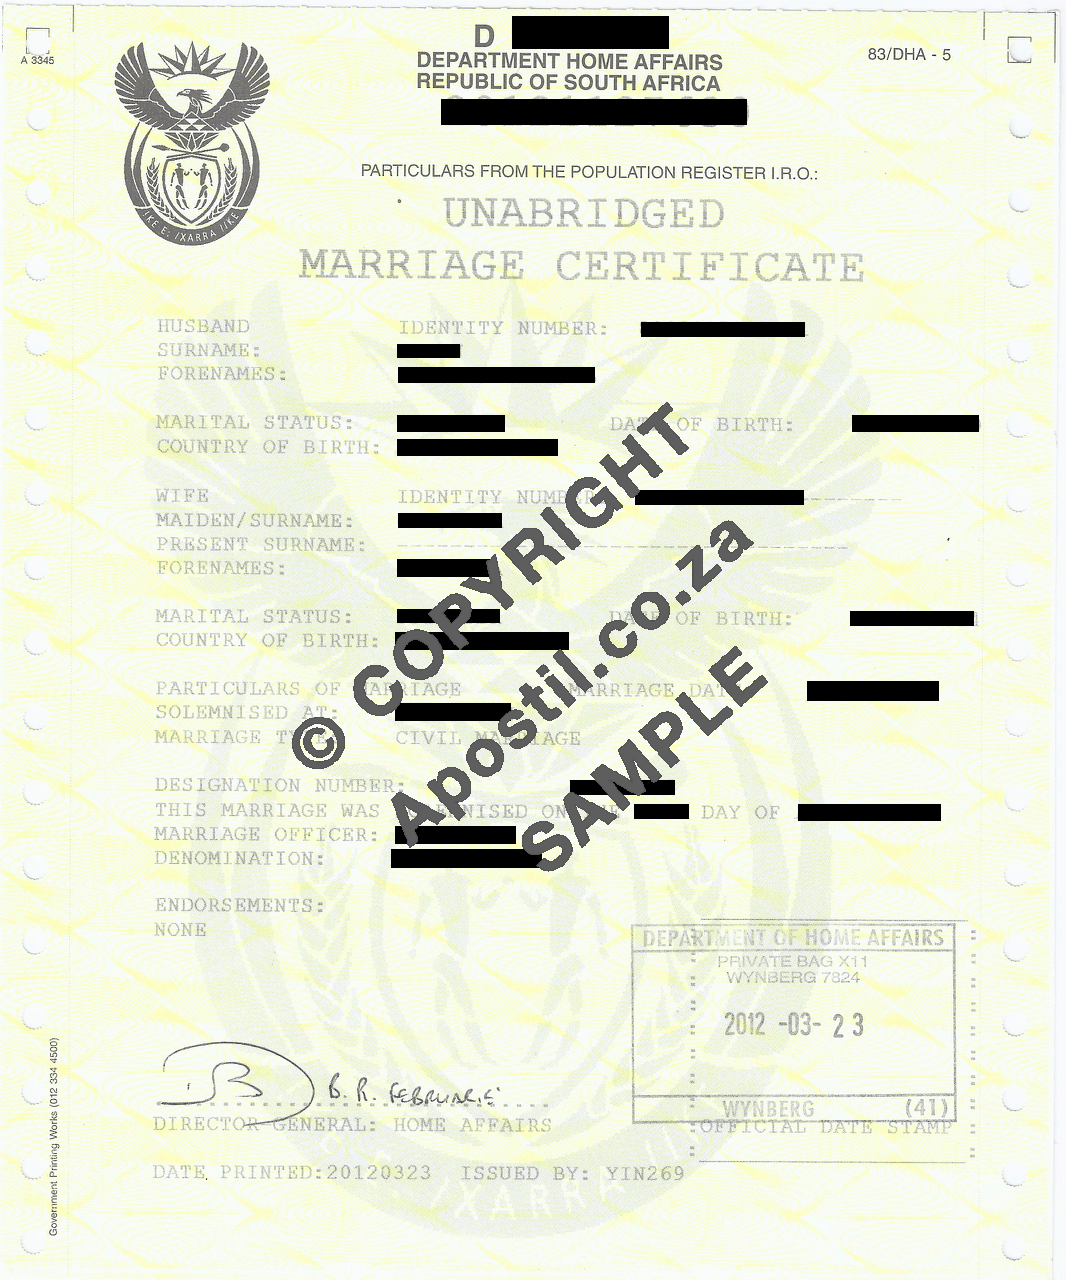 Unabridged Marriage Certificate | Apostilles and Police